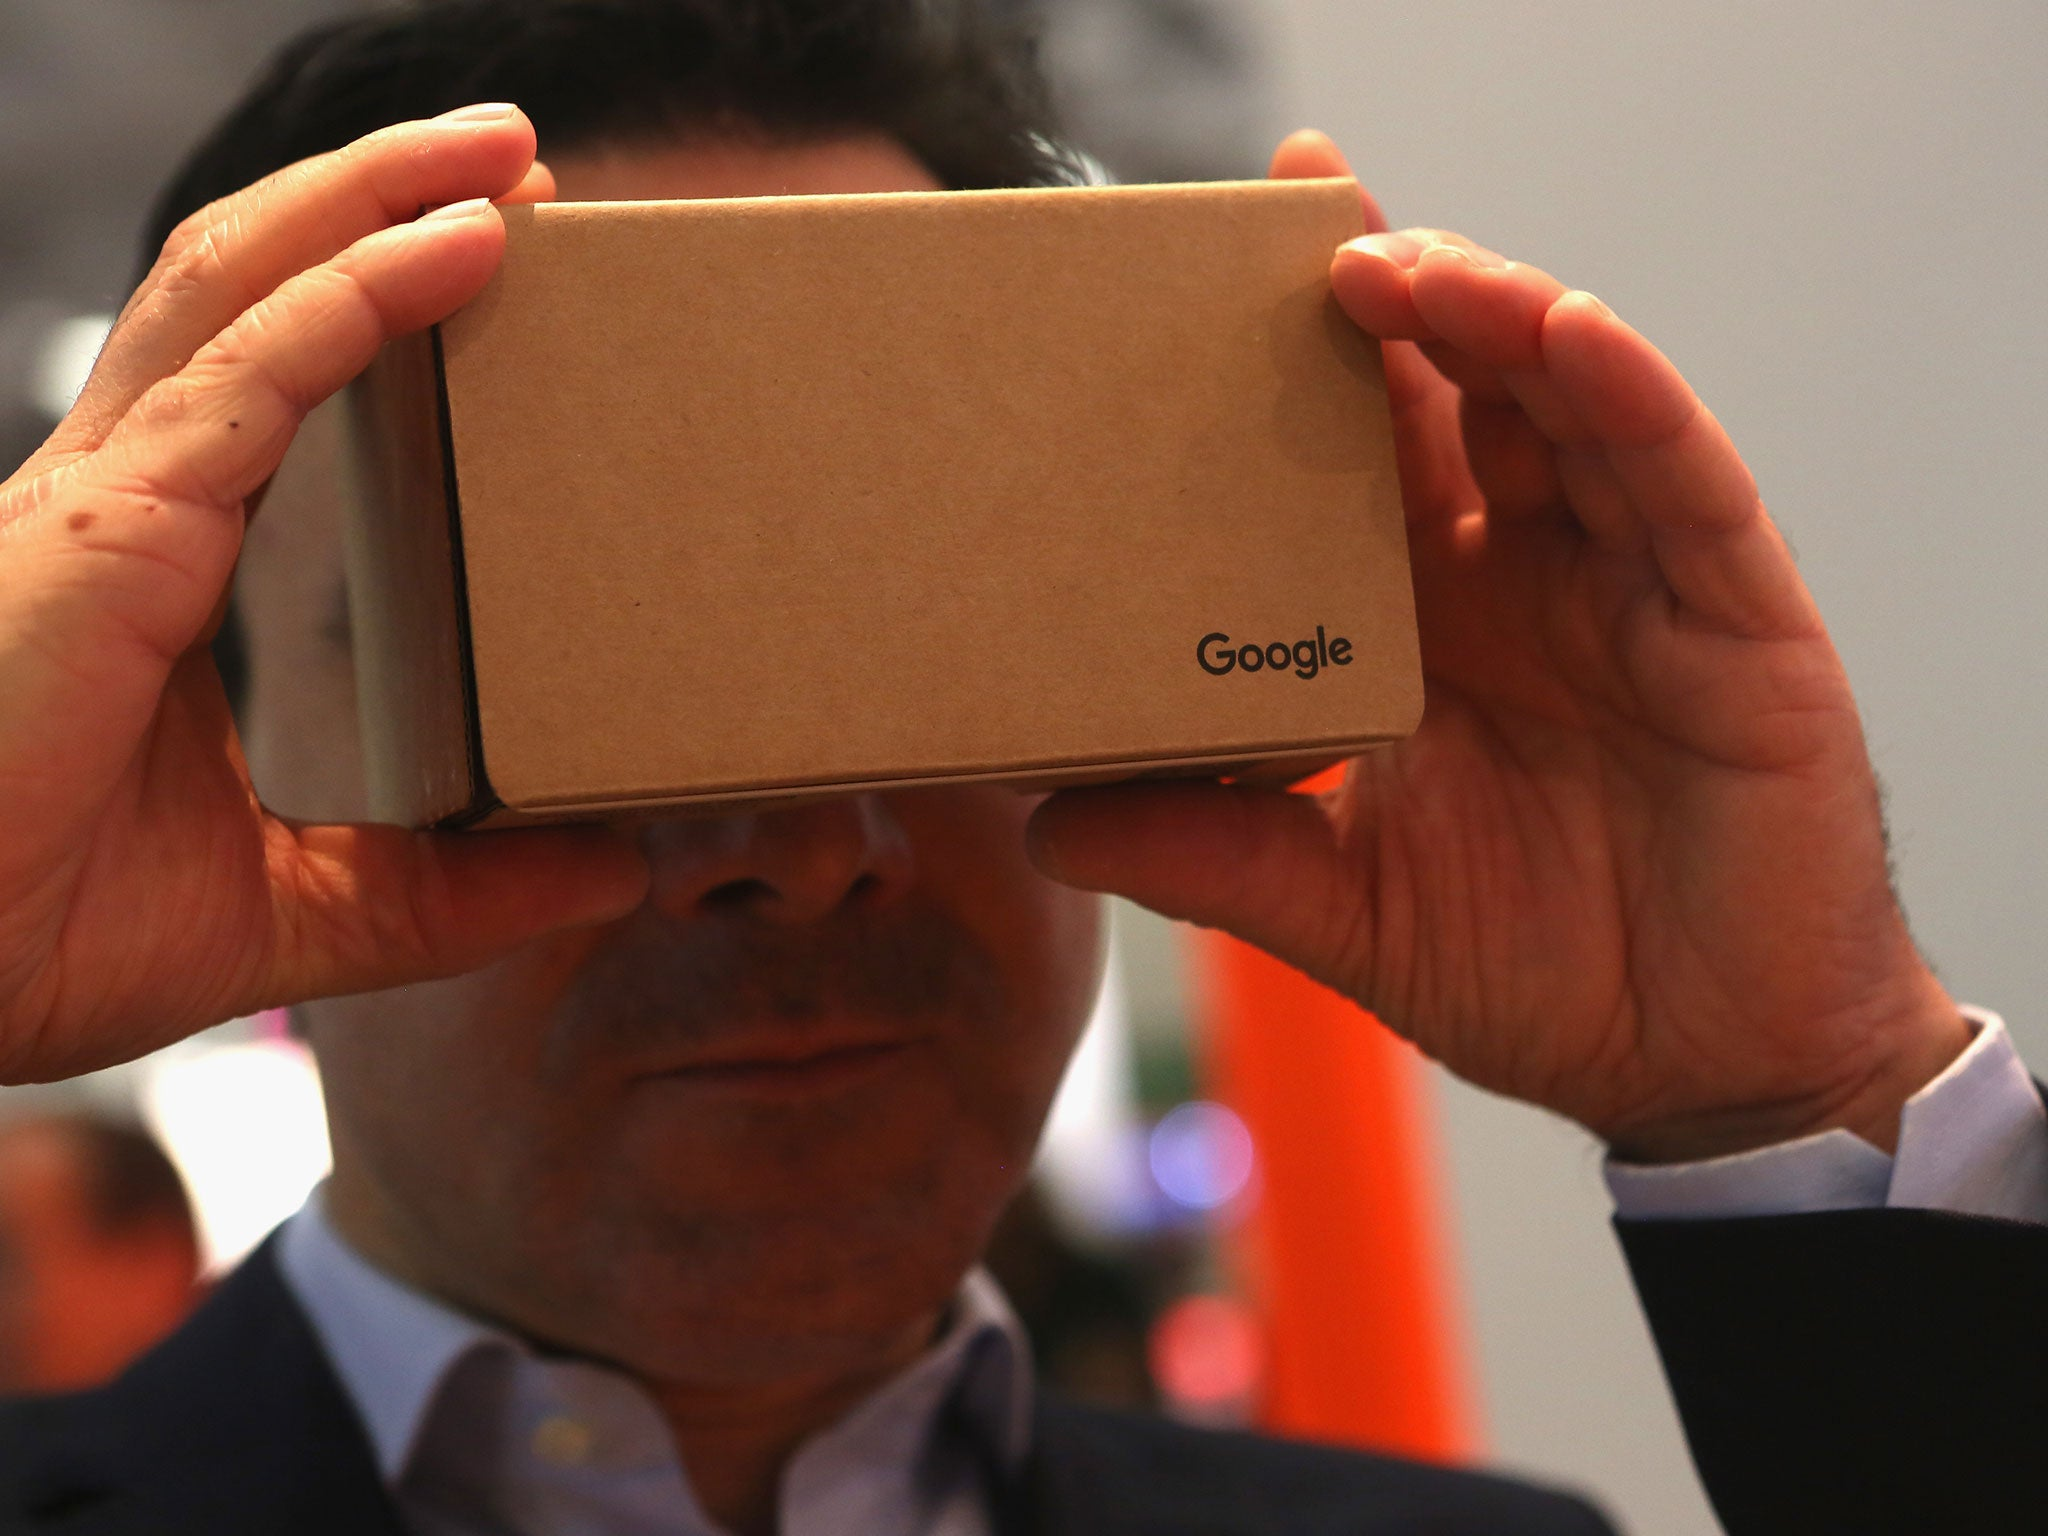 Google rumoured to unveil standalone 'Android VR' headset at I/O conference